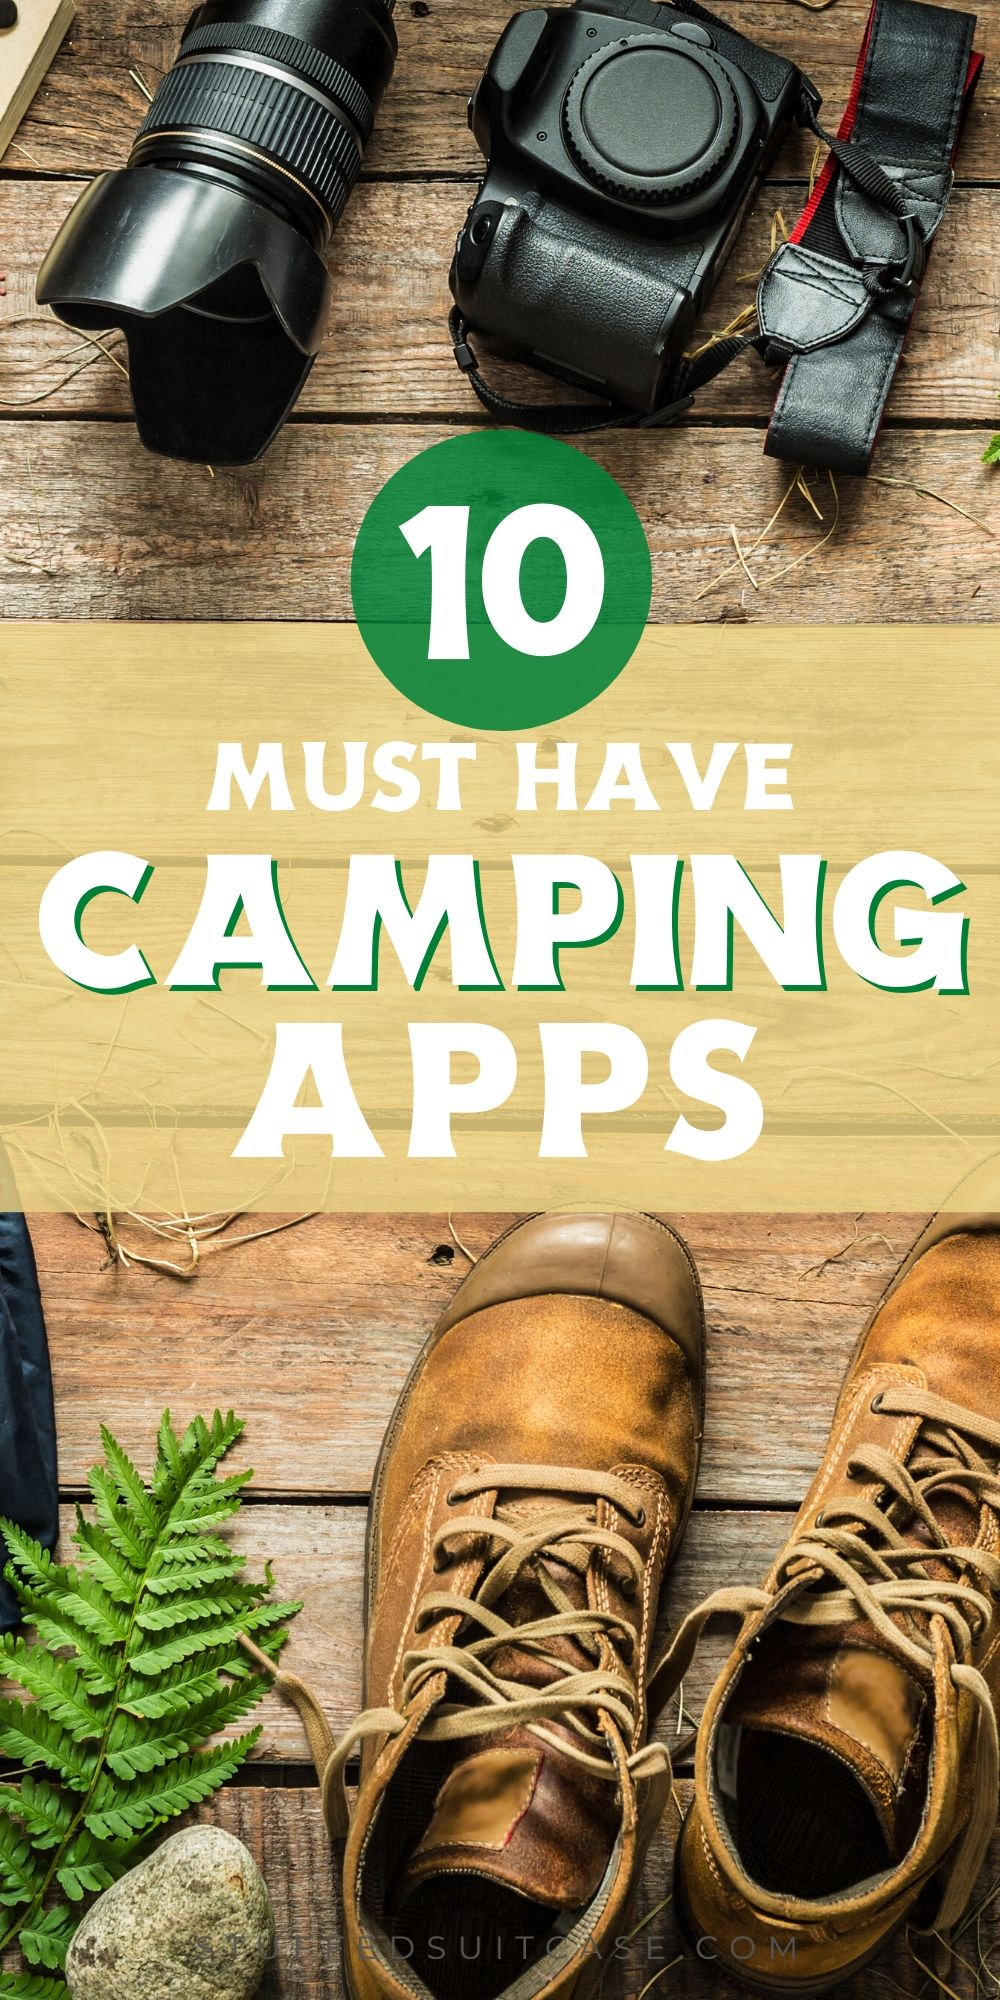 camping apps pinterest images